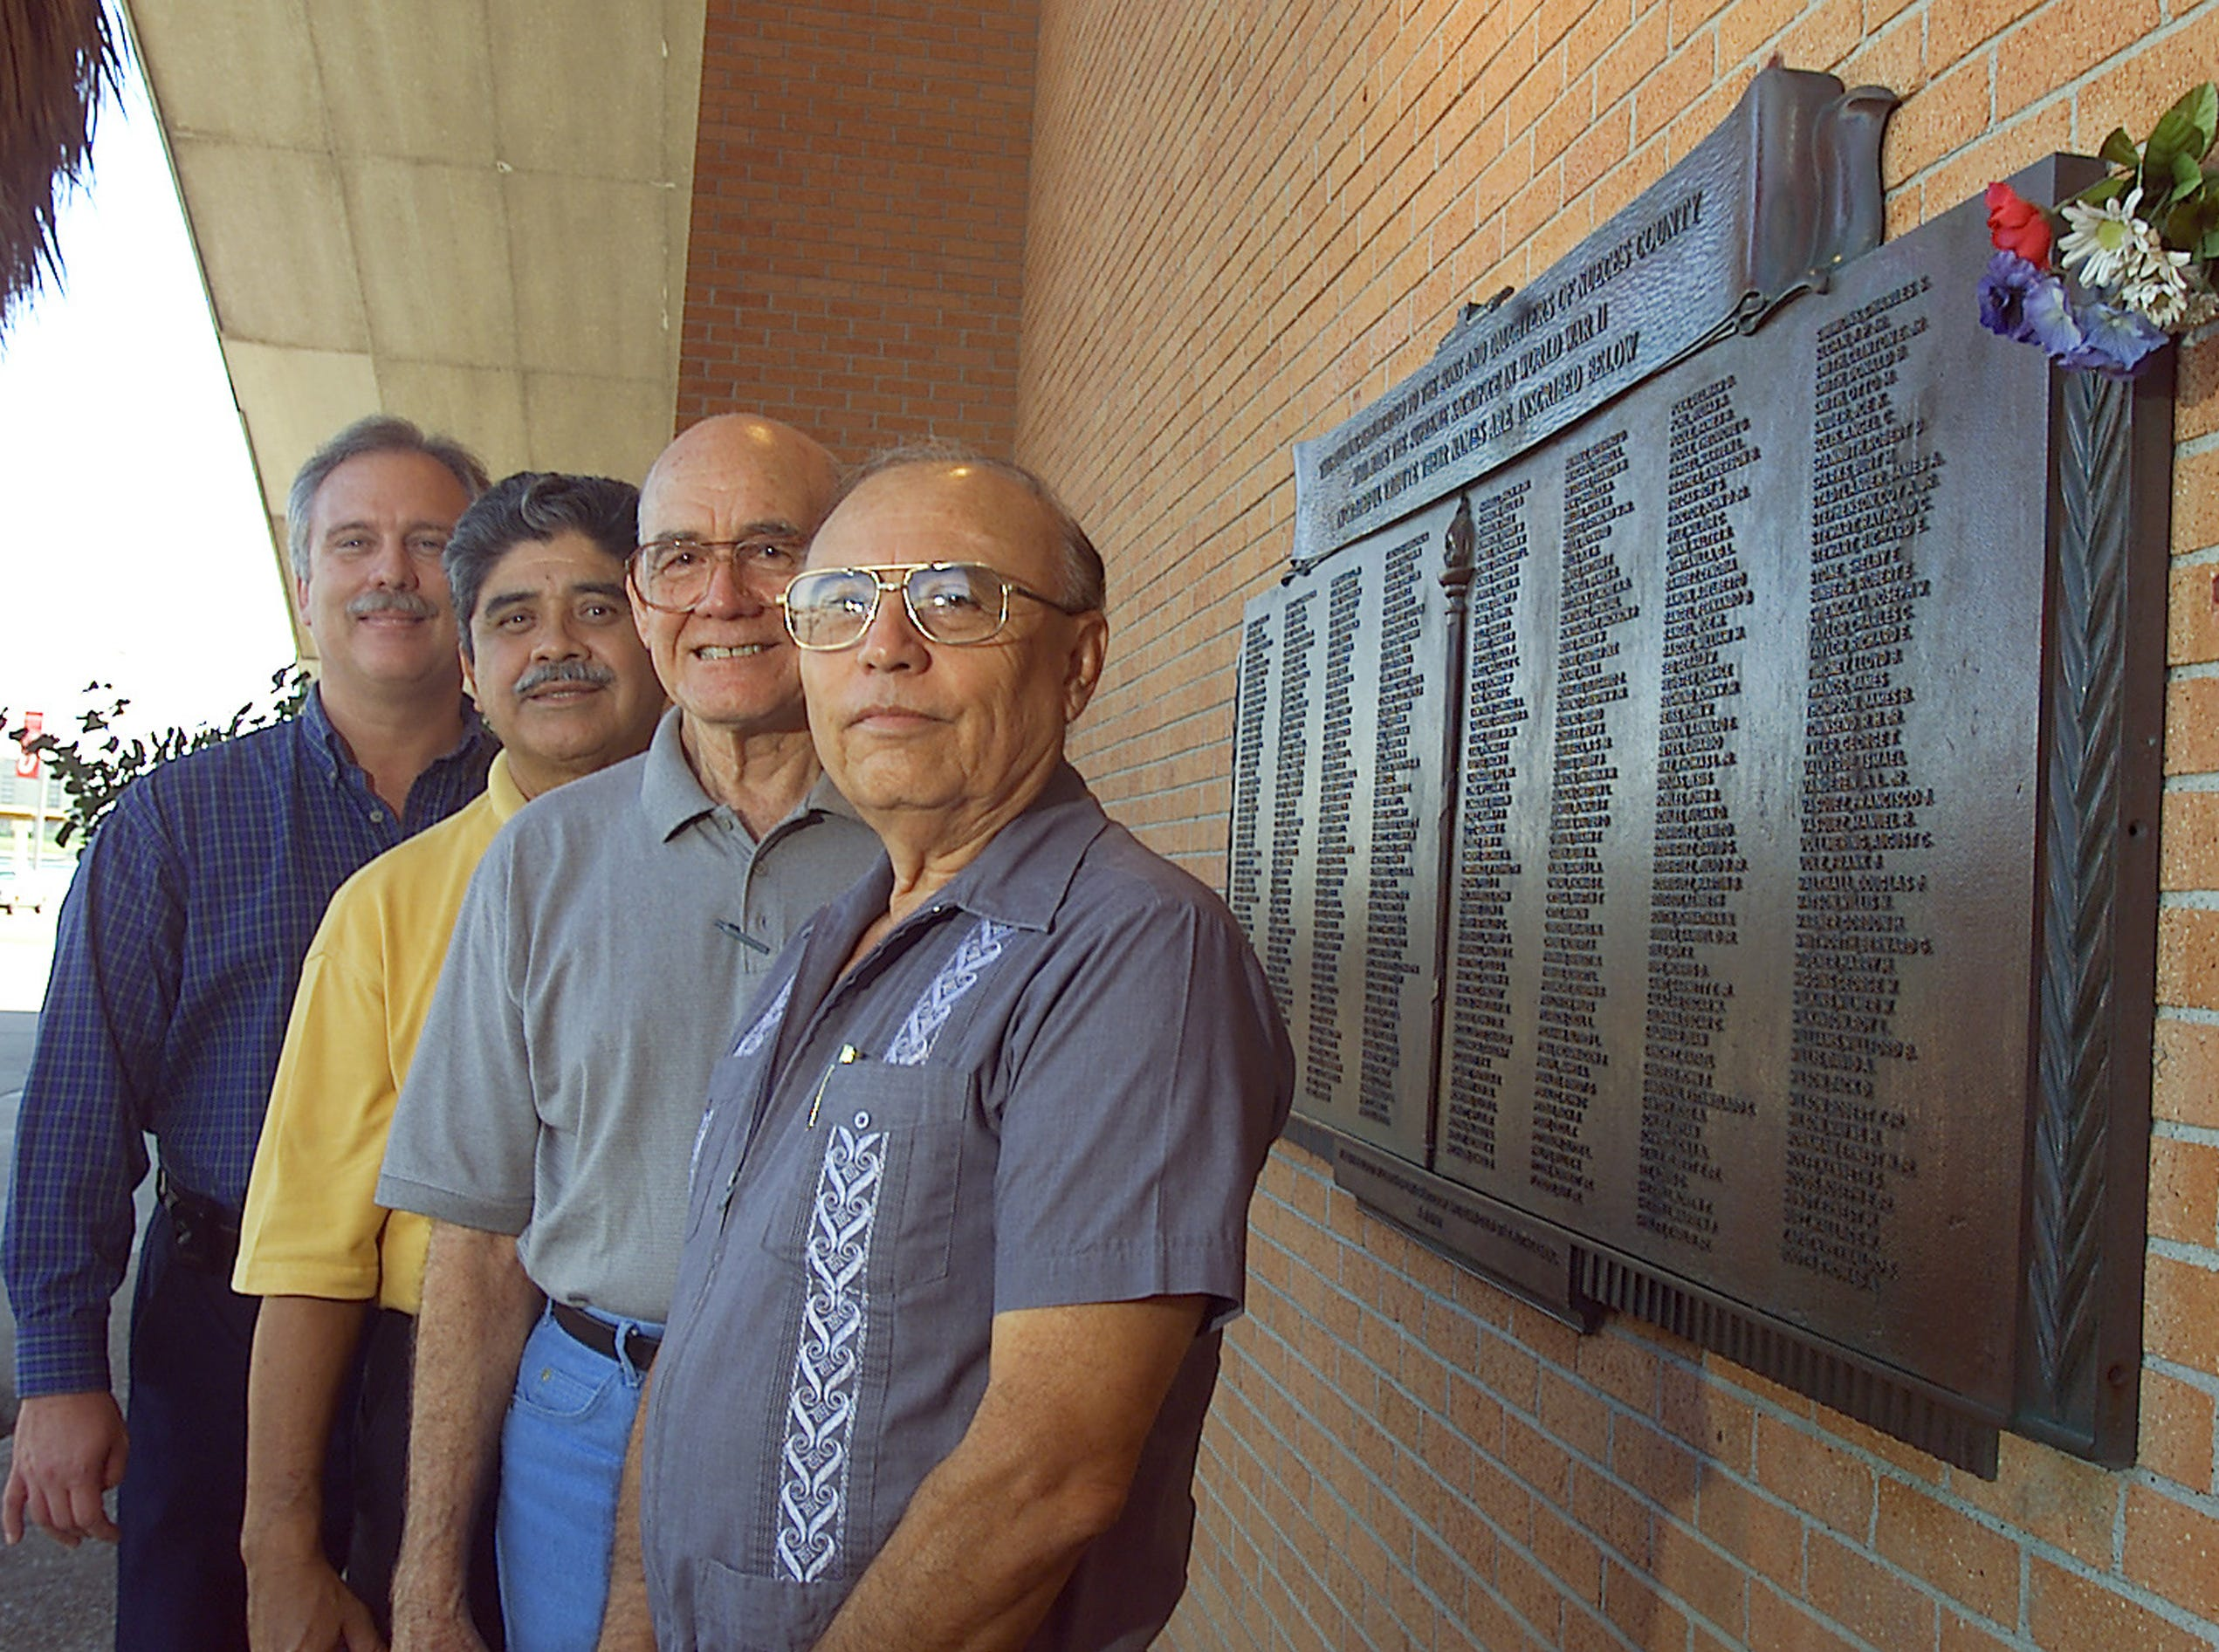 (LT TO RT) Coliseum manager, John Simon, Arturo Casillas, Eli Escobar, Ruben Chavez, at the WWII memorial plaque on the the front wall of Memorial Coliseum on Sept. 27, 2001. The plaque is now in Sherrill Park.